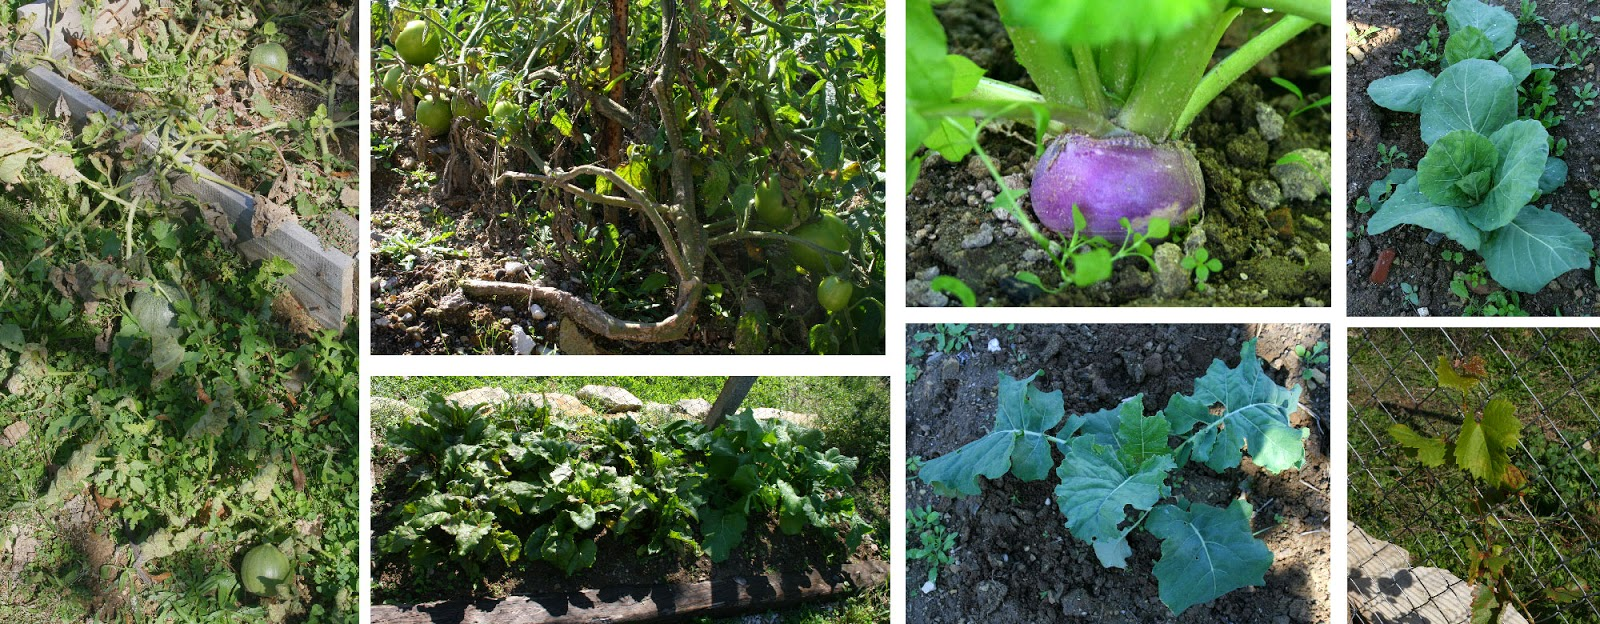 Lots of things growing really well